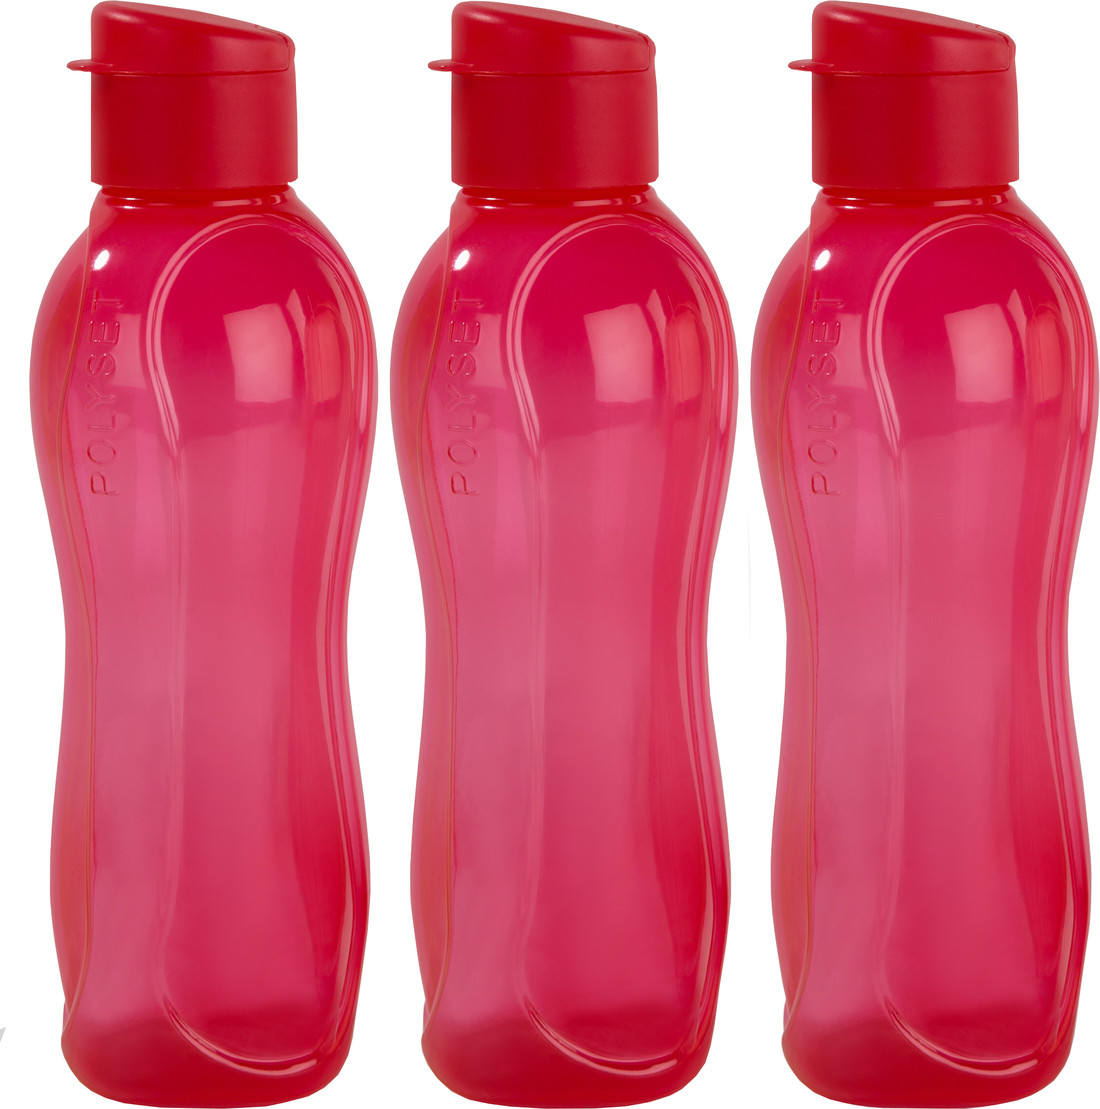 Polyset Premium - Fliptop 1000 ml Bottle